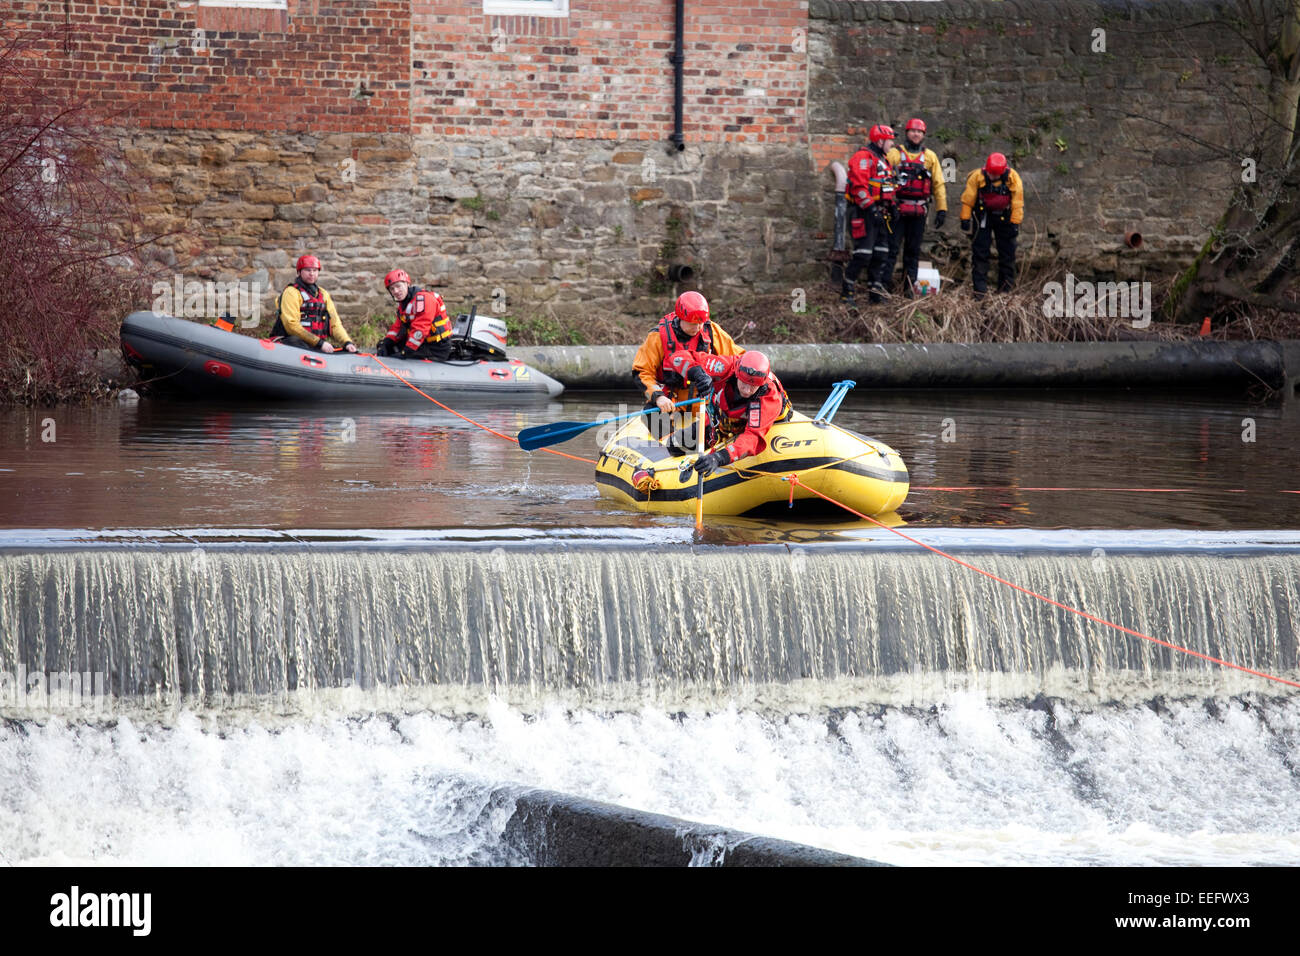 Durham, UK. 17th Jan, 2015. Members of the Durham Fire Service and the Teesdale and Weardale Mountain Rescue service - Stock Image